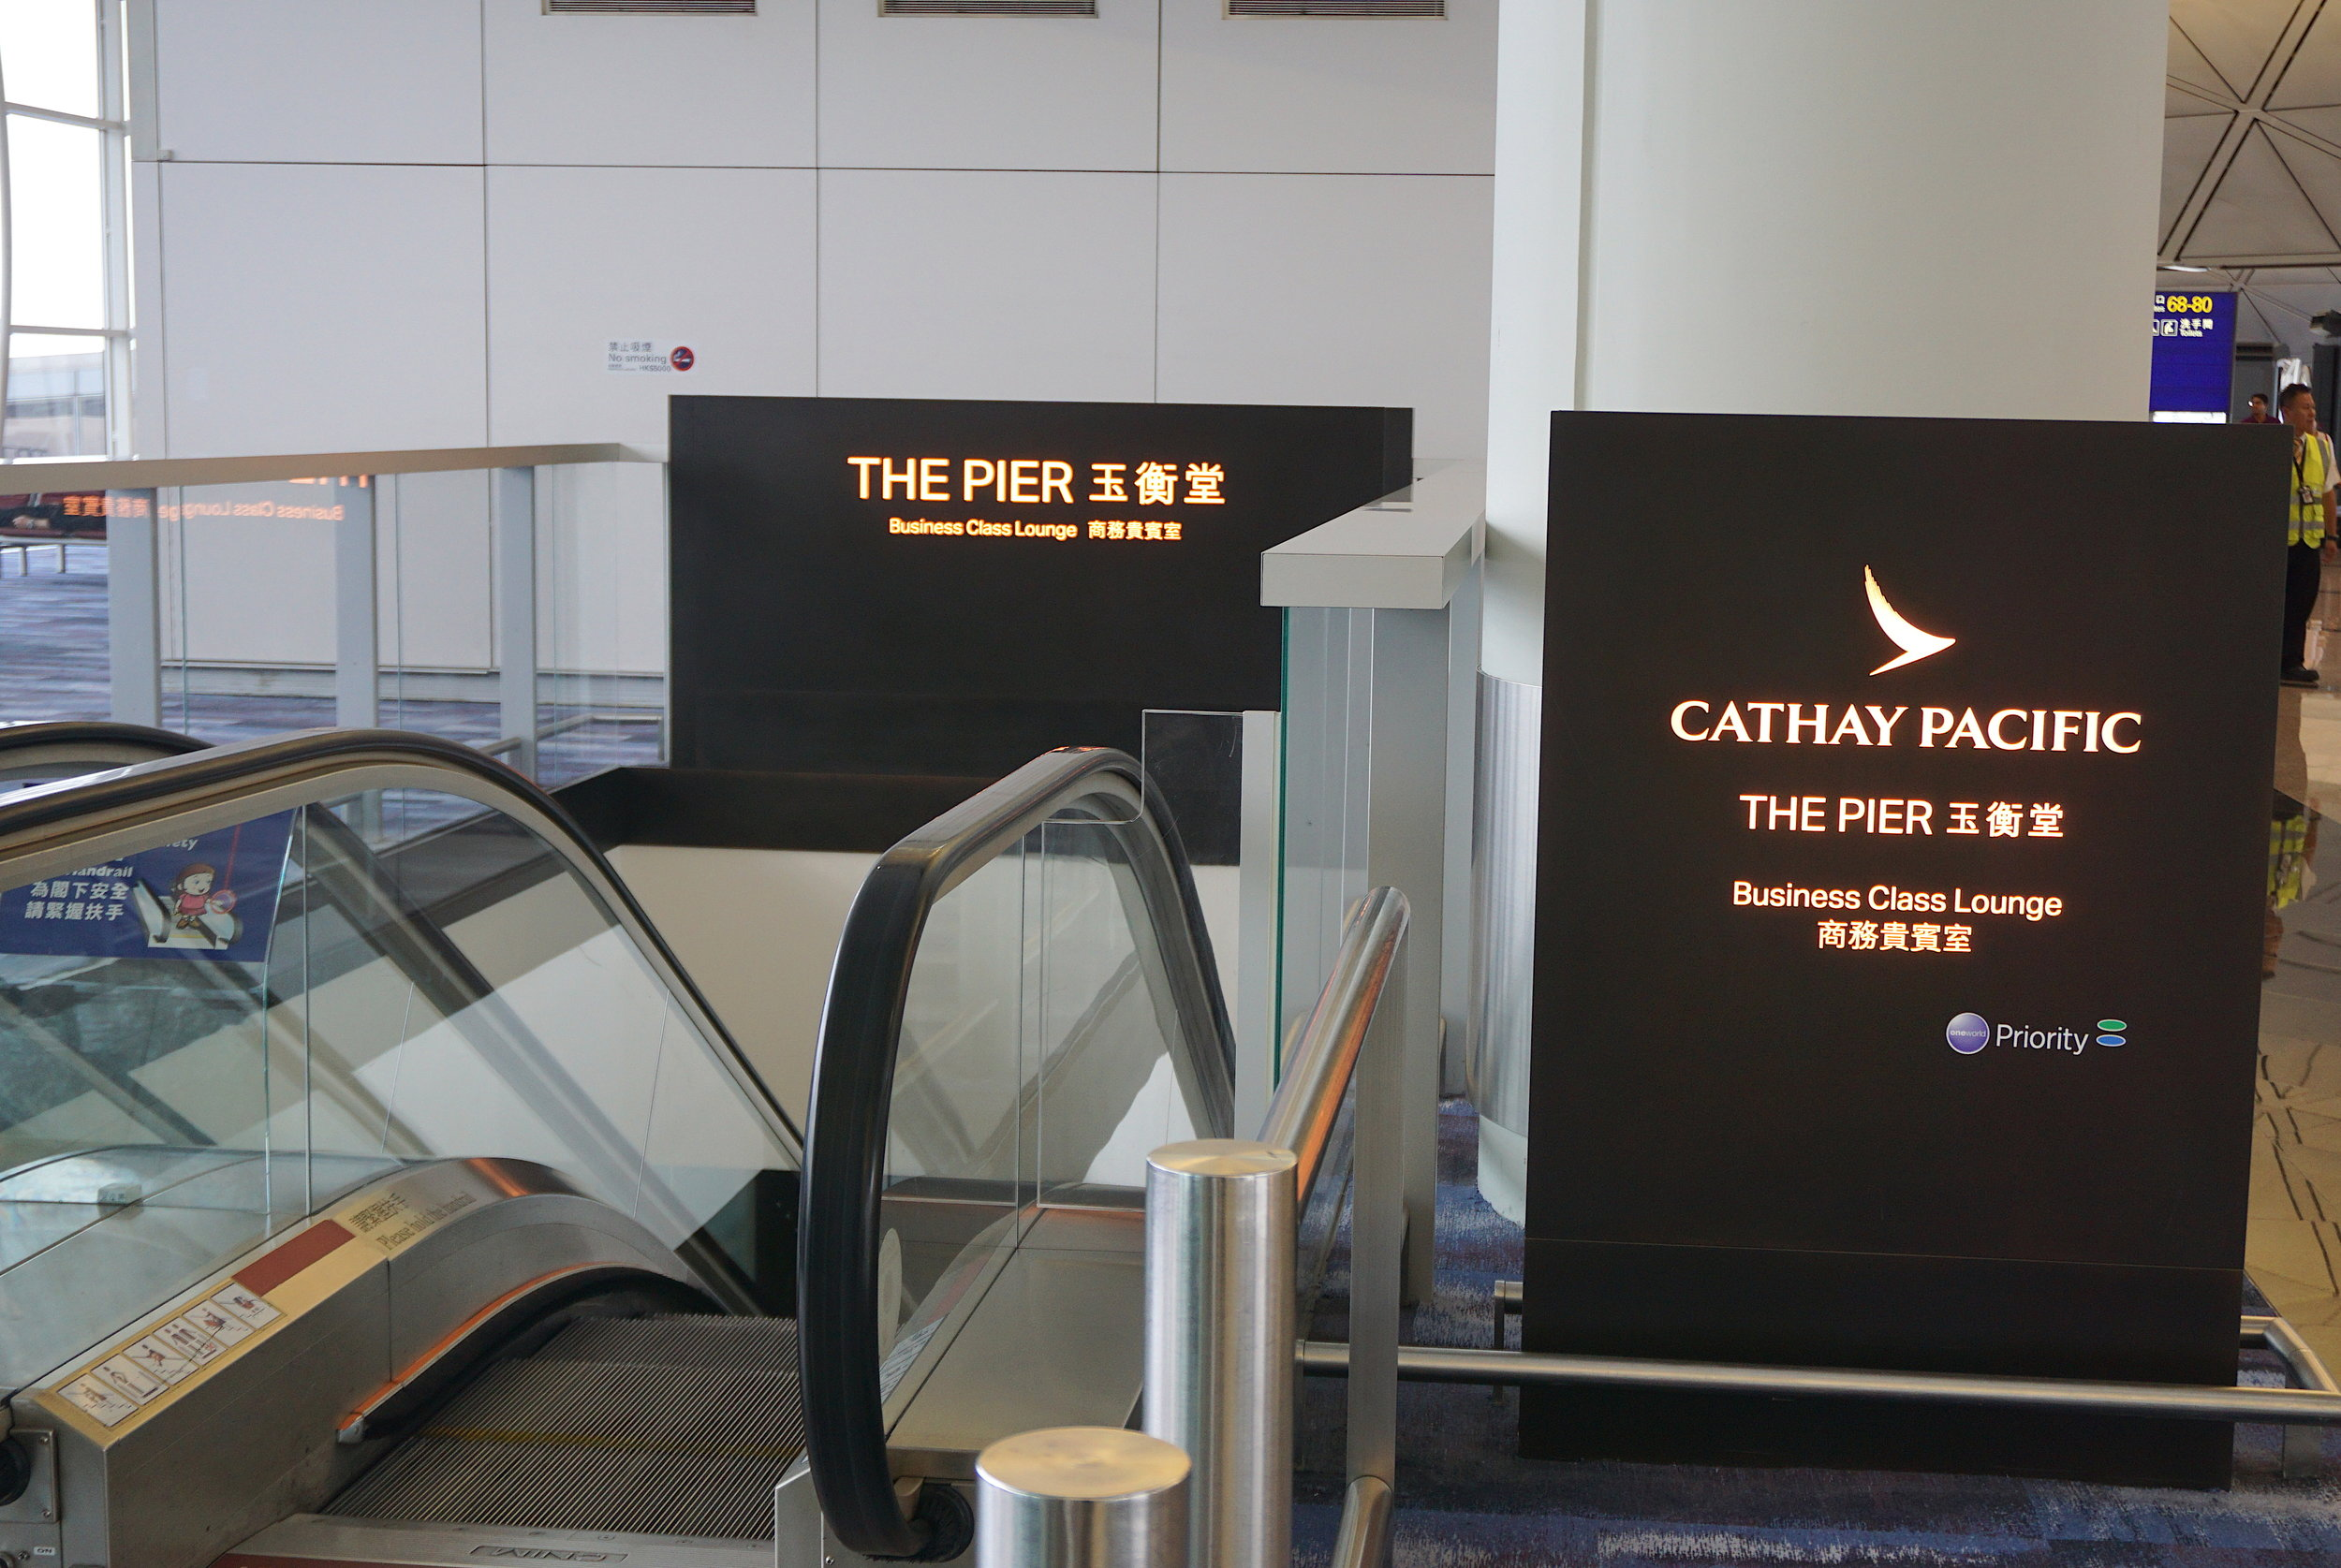 Cathay Pacific's Pier Business Class Lounge can be accessed by this set of escalators